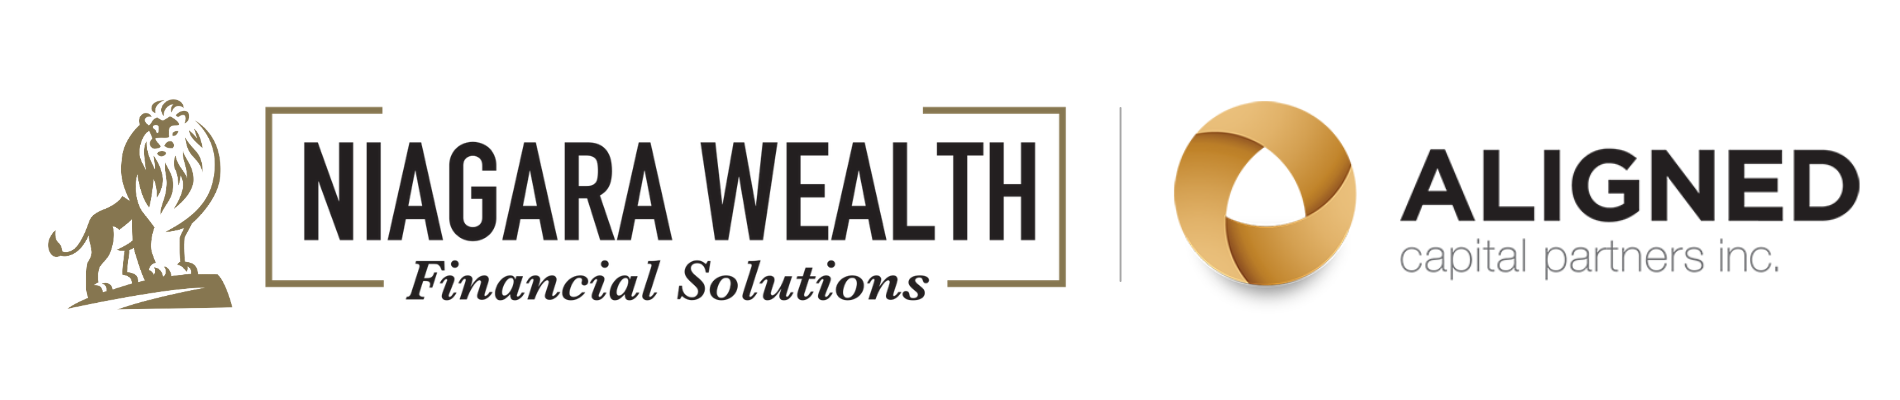 Niagara Wealth Financial Solutions Logo